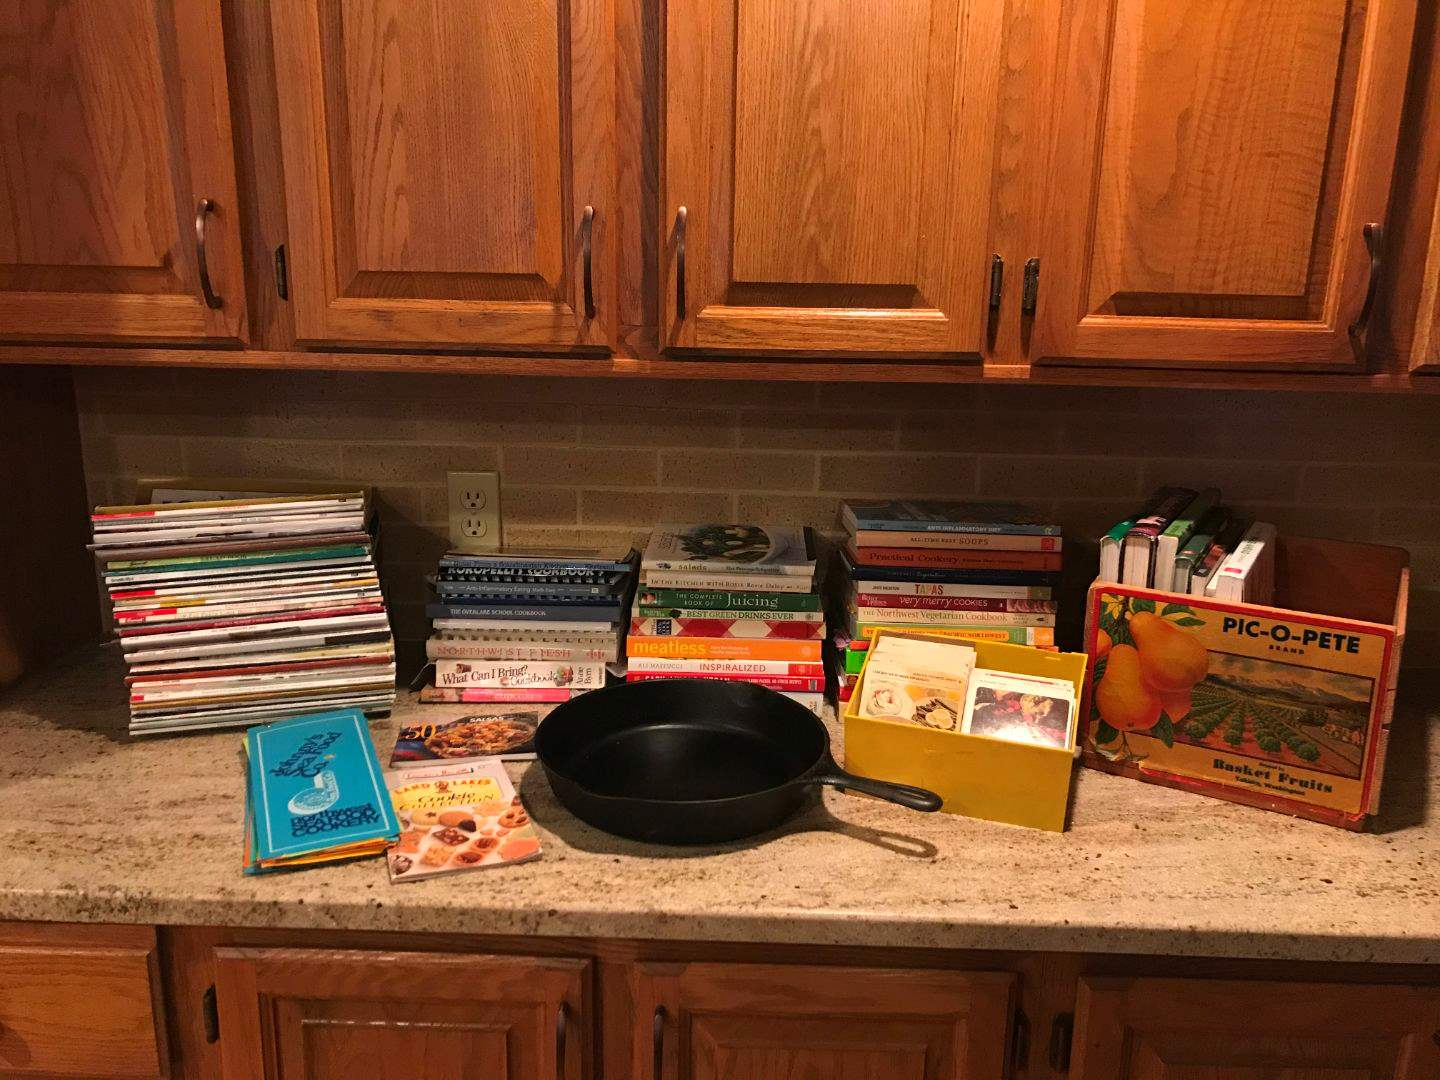 Lot # 72 - Cast Iron #10 Skillet w/ Small Collection of Cook Books (main image)